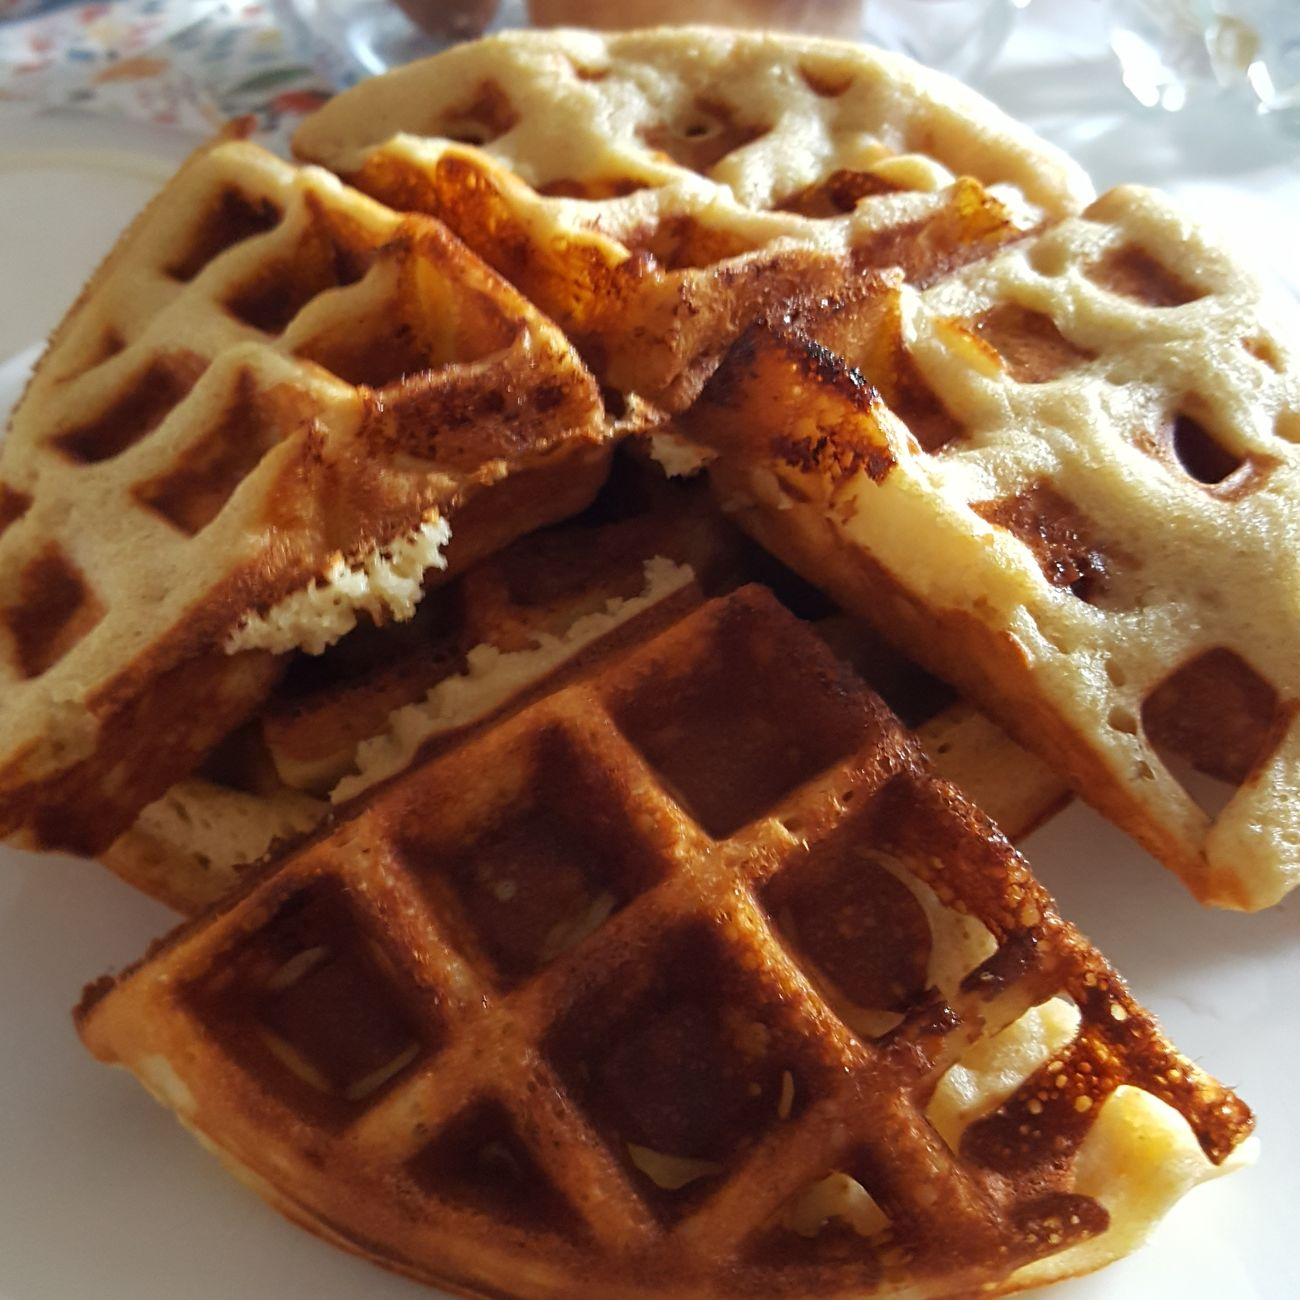 Waffle love 💖 it's a recipe from Sally's Welt. but made in glutenfree way. deliciously Food Sweet Food Food And Drink Dessert Waffles!! Waffle Time Glutenfree Glutenfreibacken GlutenFreeFood Glutenfrei